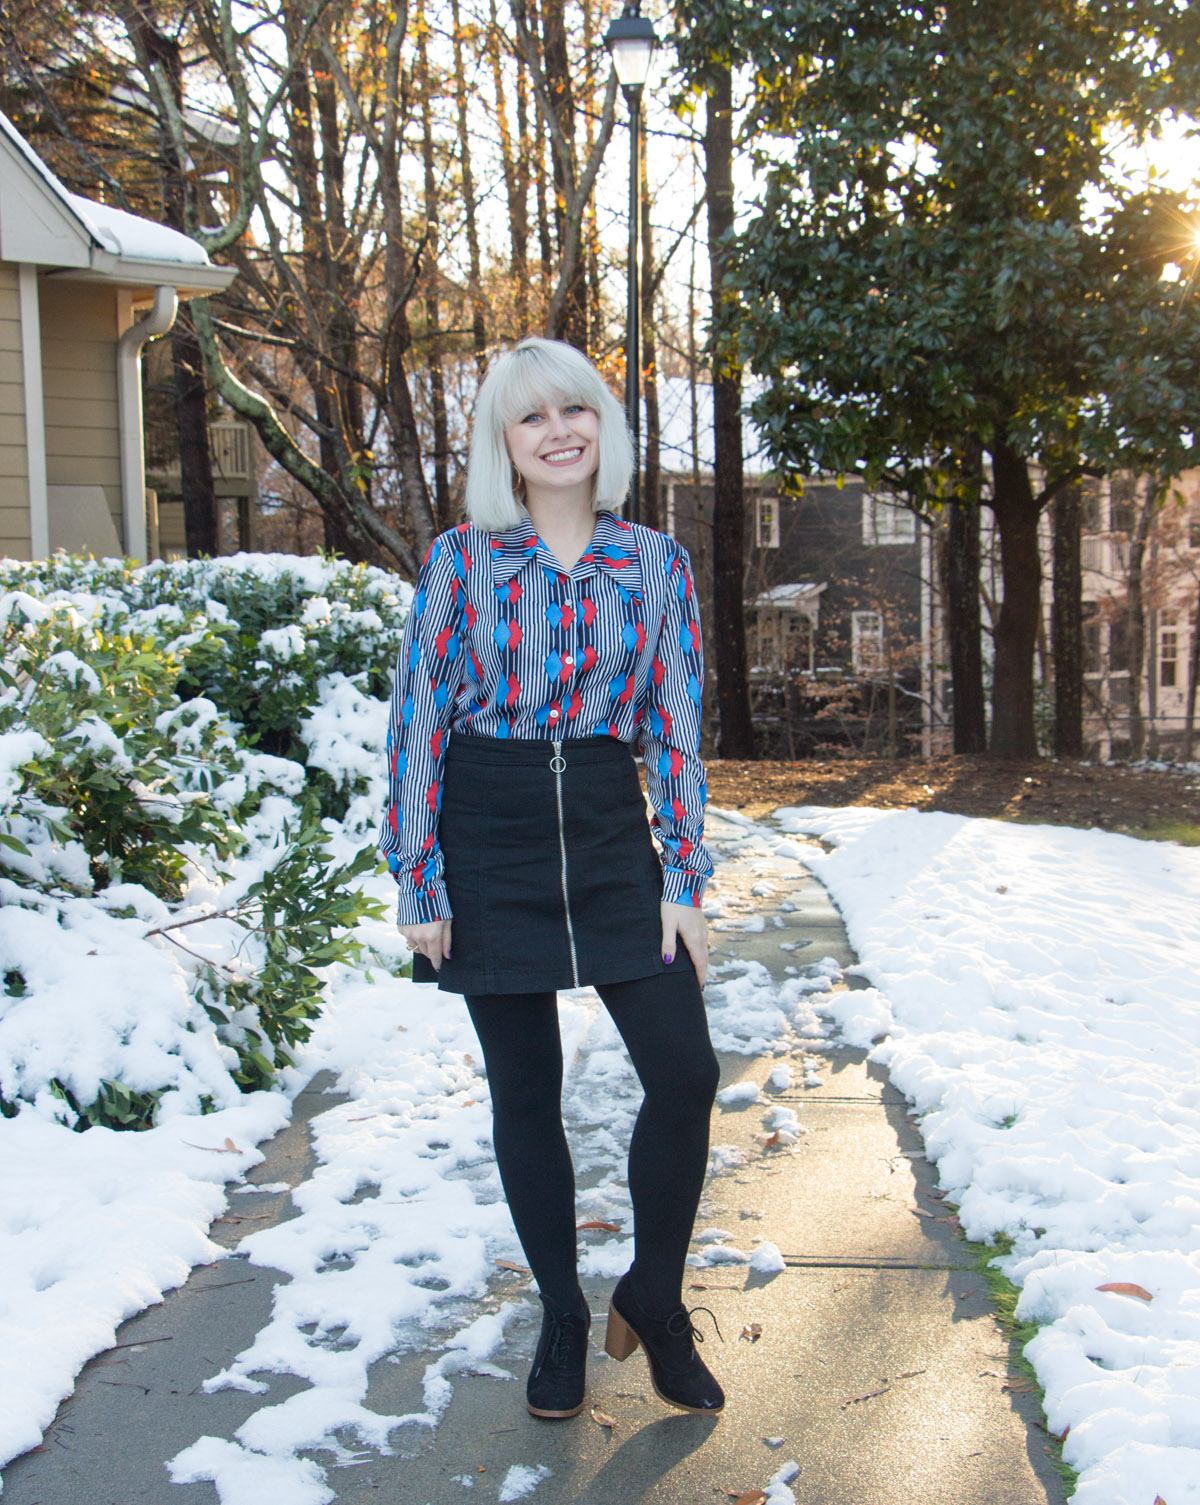 Black Mini Skirt, Fleece Lined Tights, Black Lace Up Boots, and 70s Geometric Print Shirt